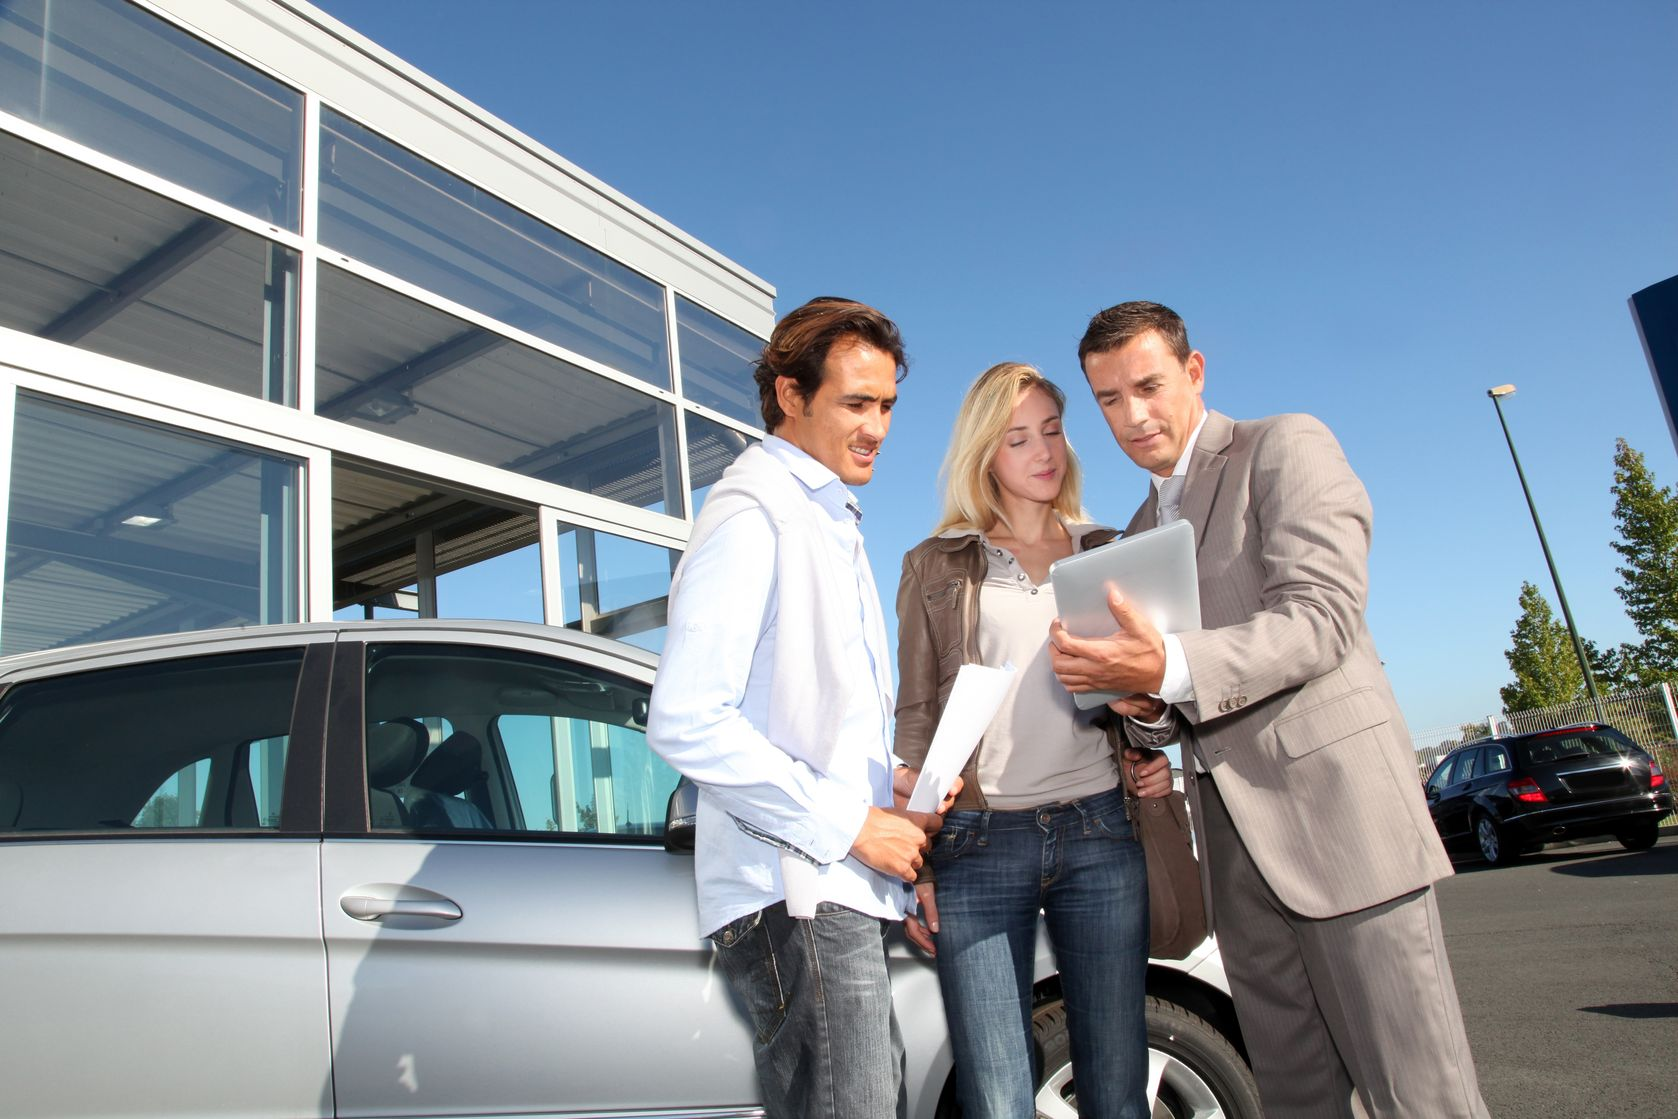 Escondido Auto Dealers Insurance